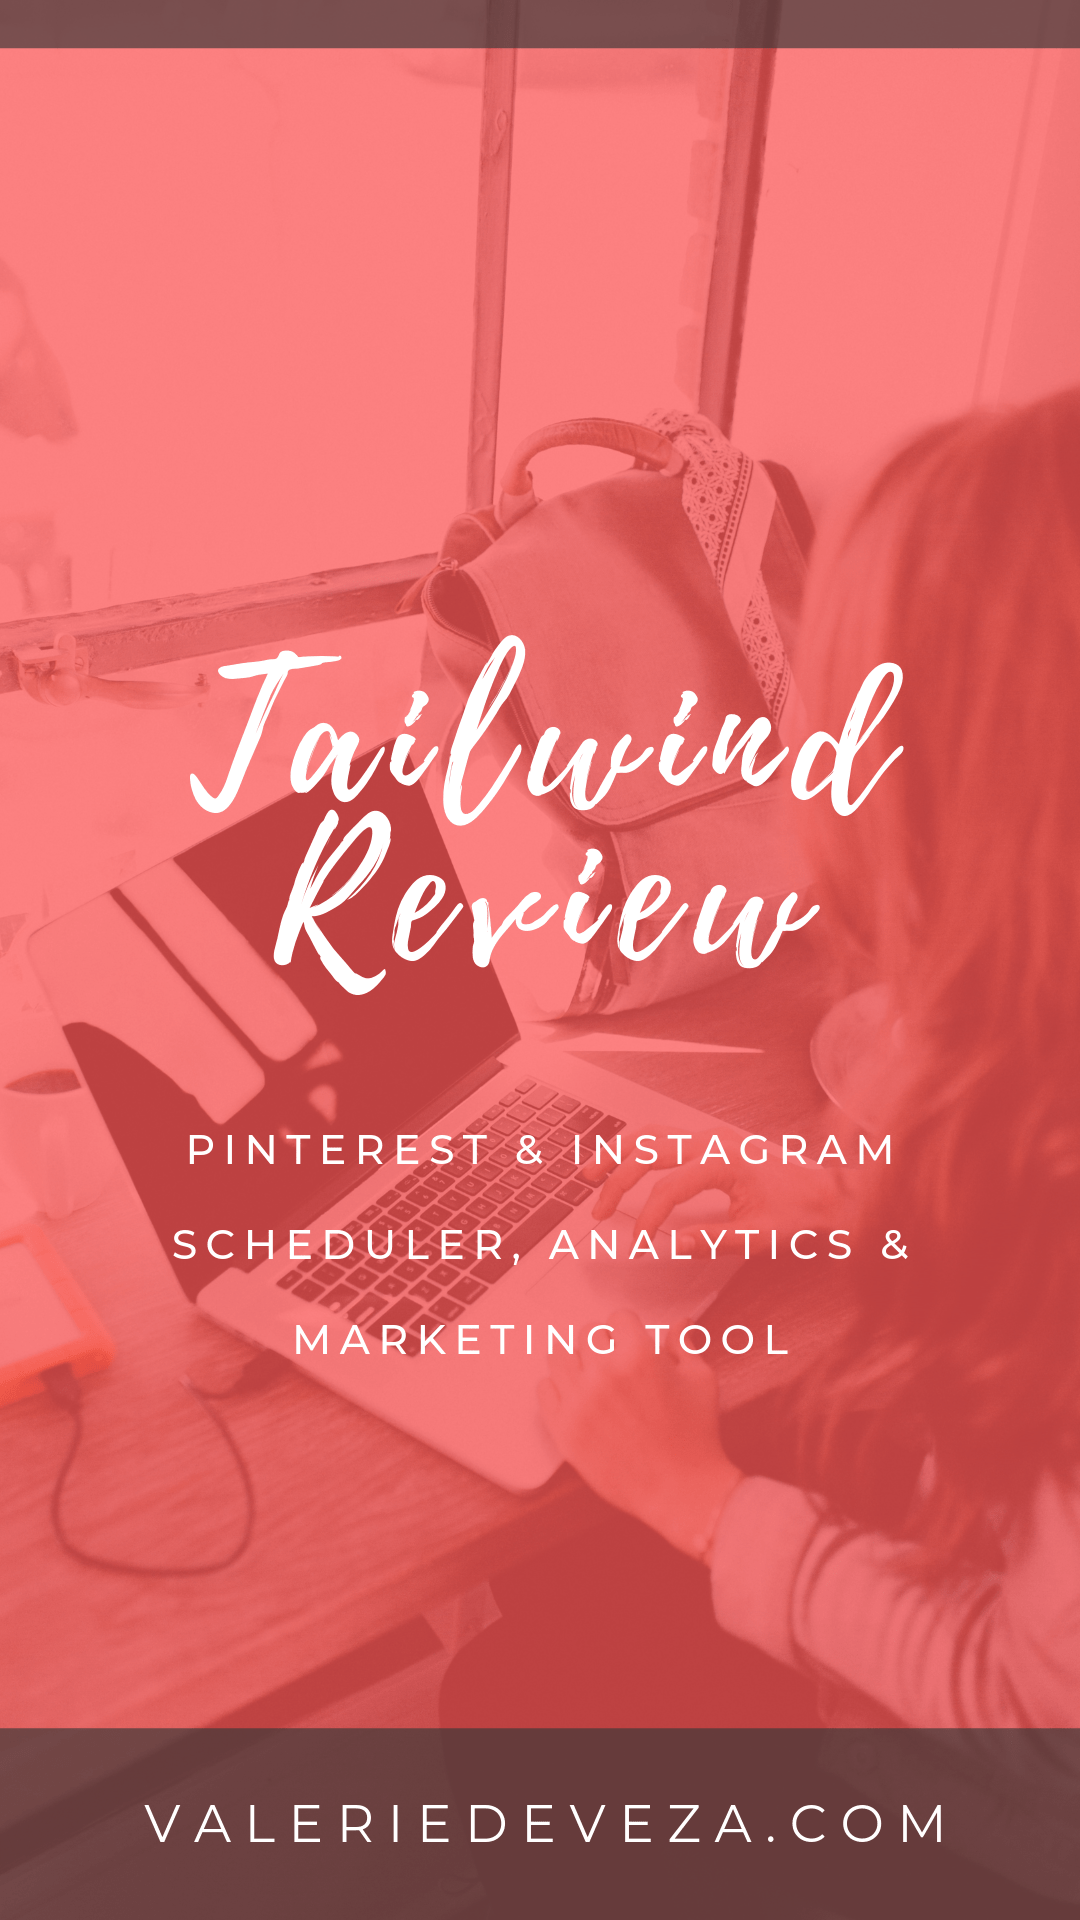 Tailwind Review - Pinterest and Instagram Scheduler, Analytics and Marketing Tool (2)